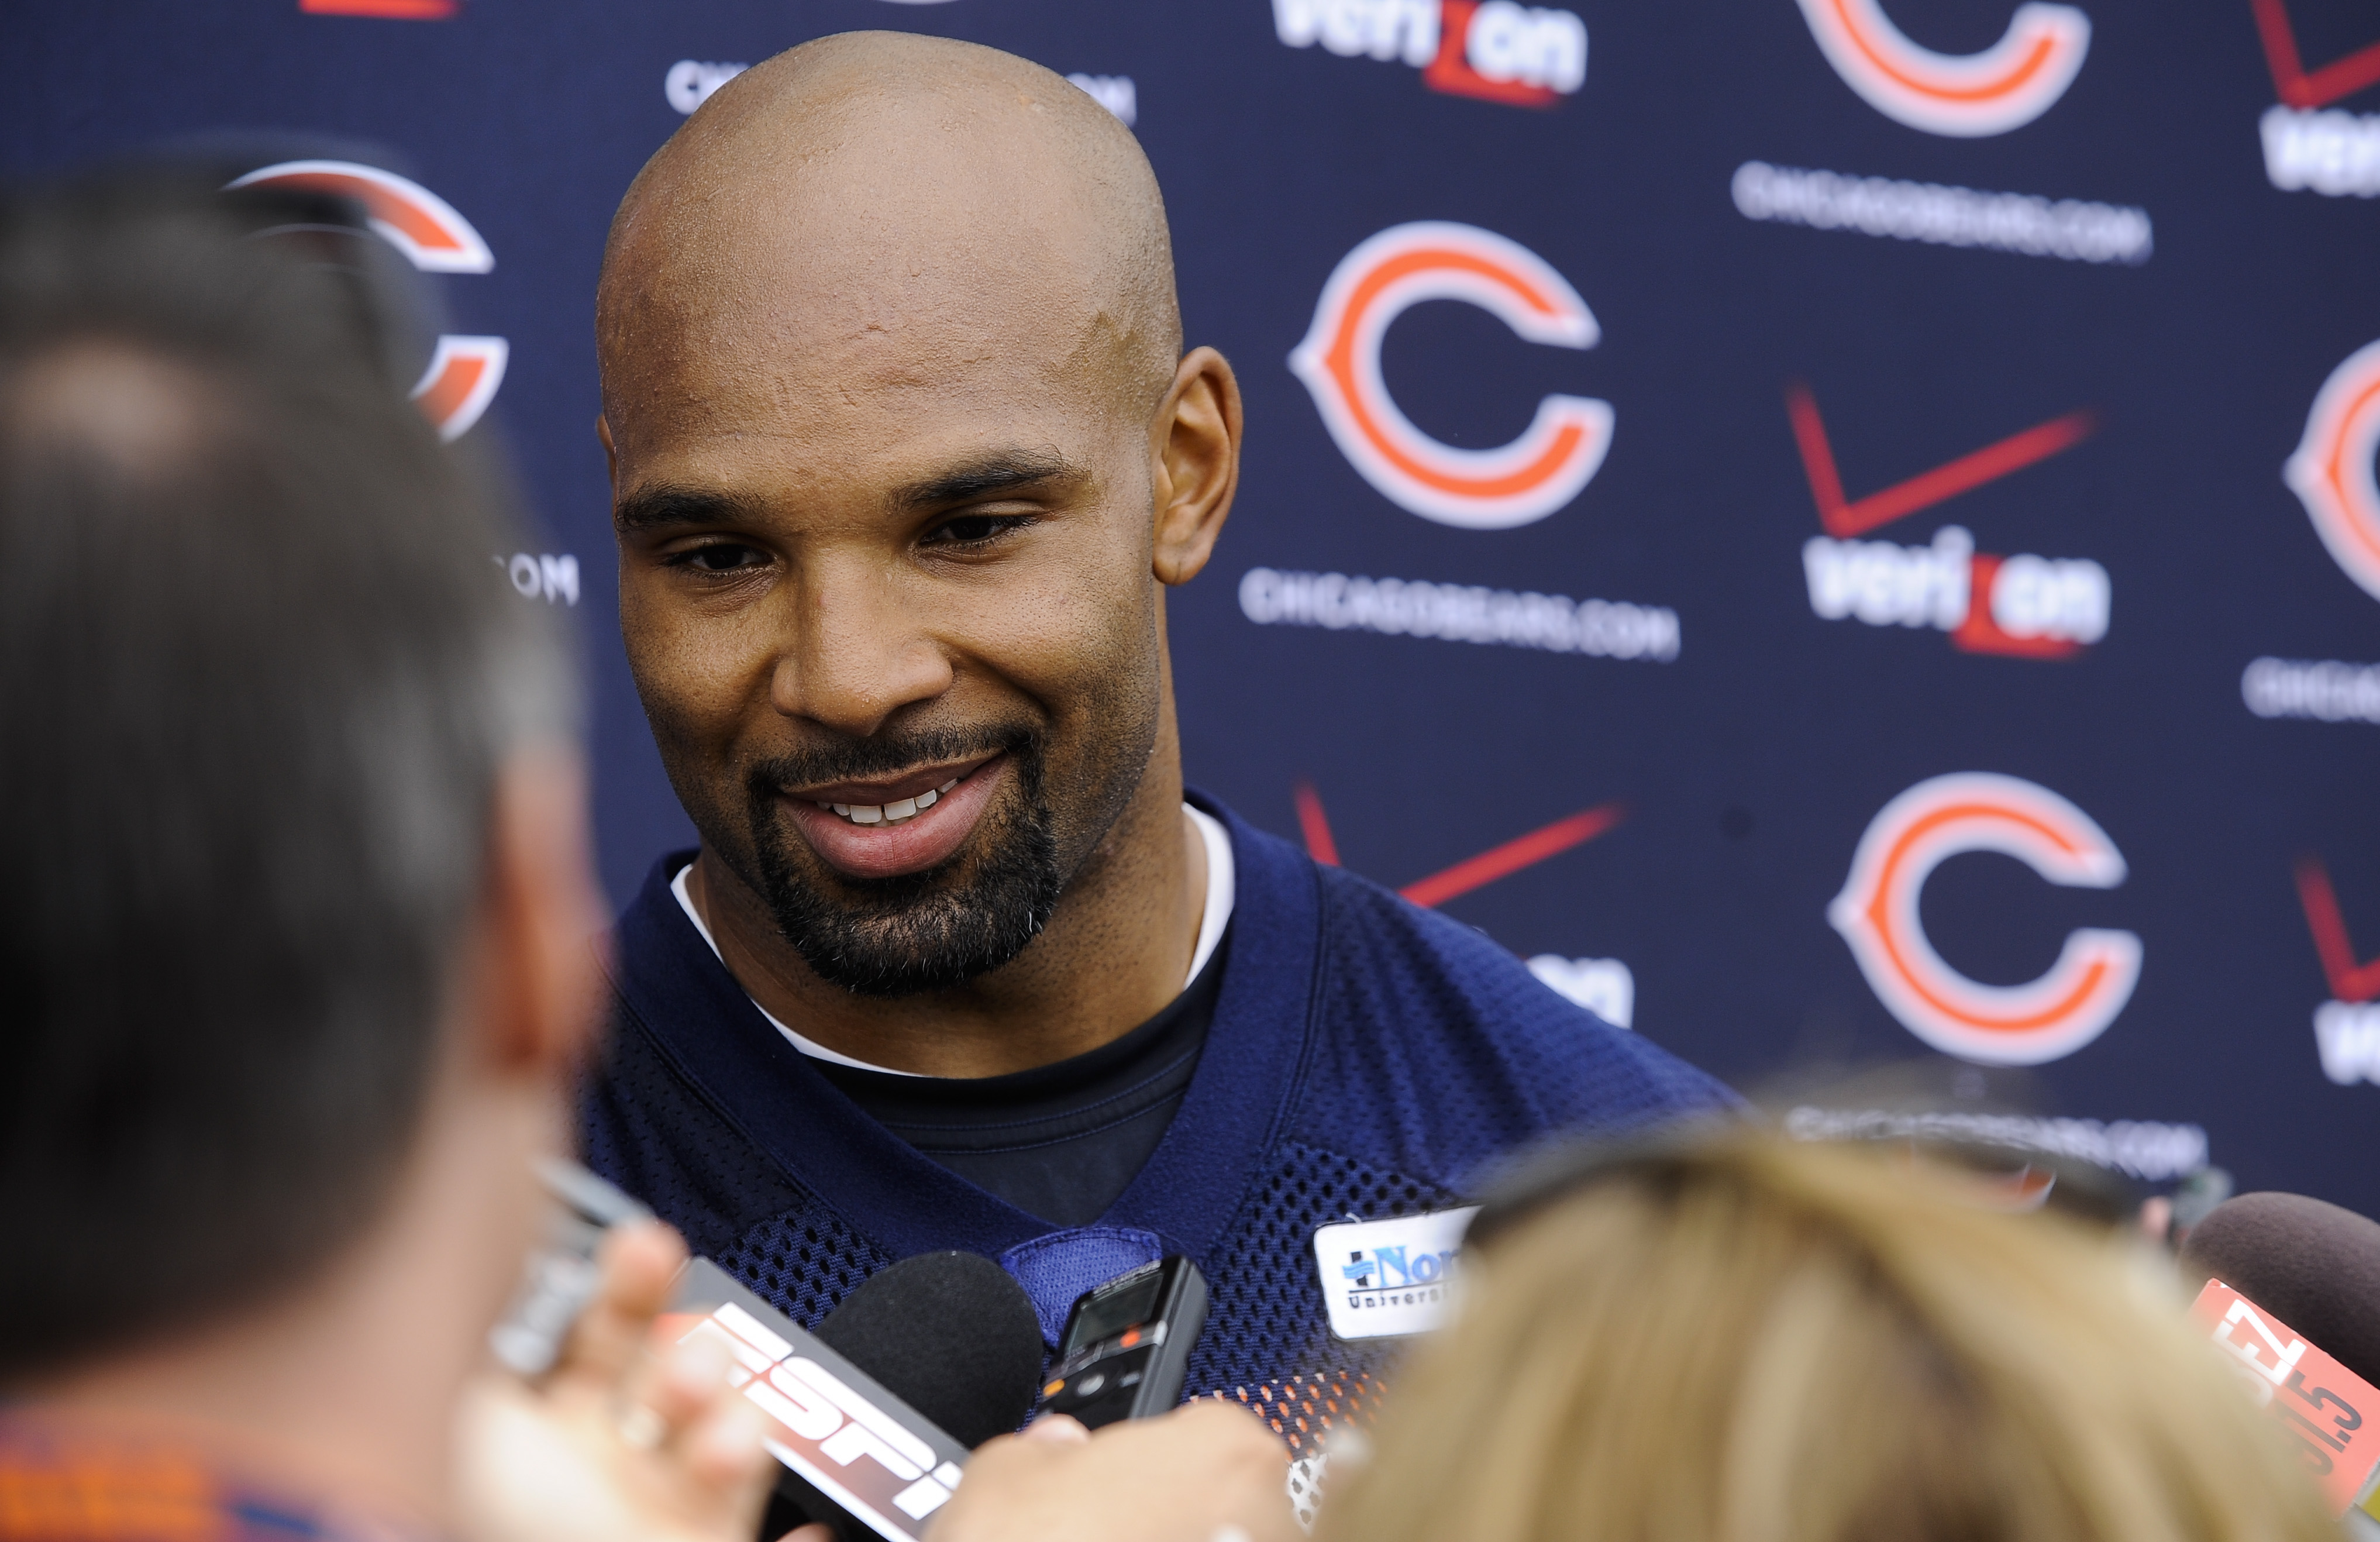 Chicago Bears running back Matt Forte speaks with the media after an NFL football organized team activity at Halas Hall, Wednesday May 27, 2015, in Lake Forest, Ill. (AP Photo/Matt Marton)